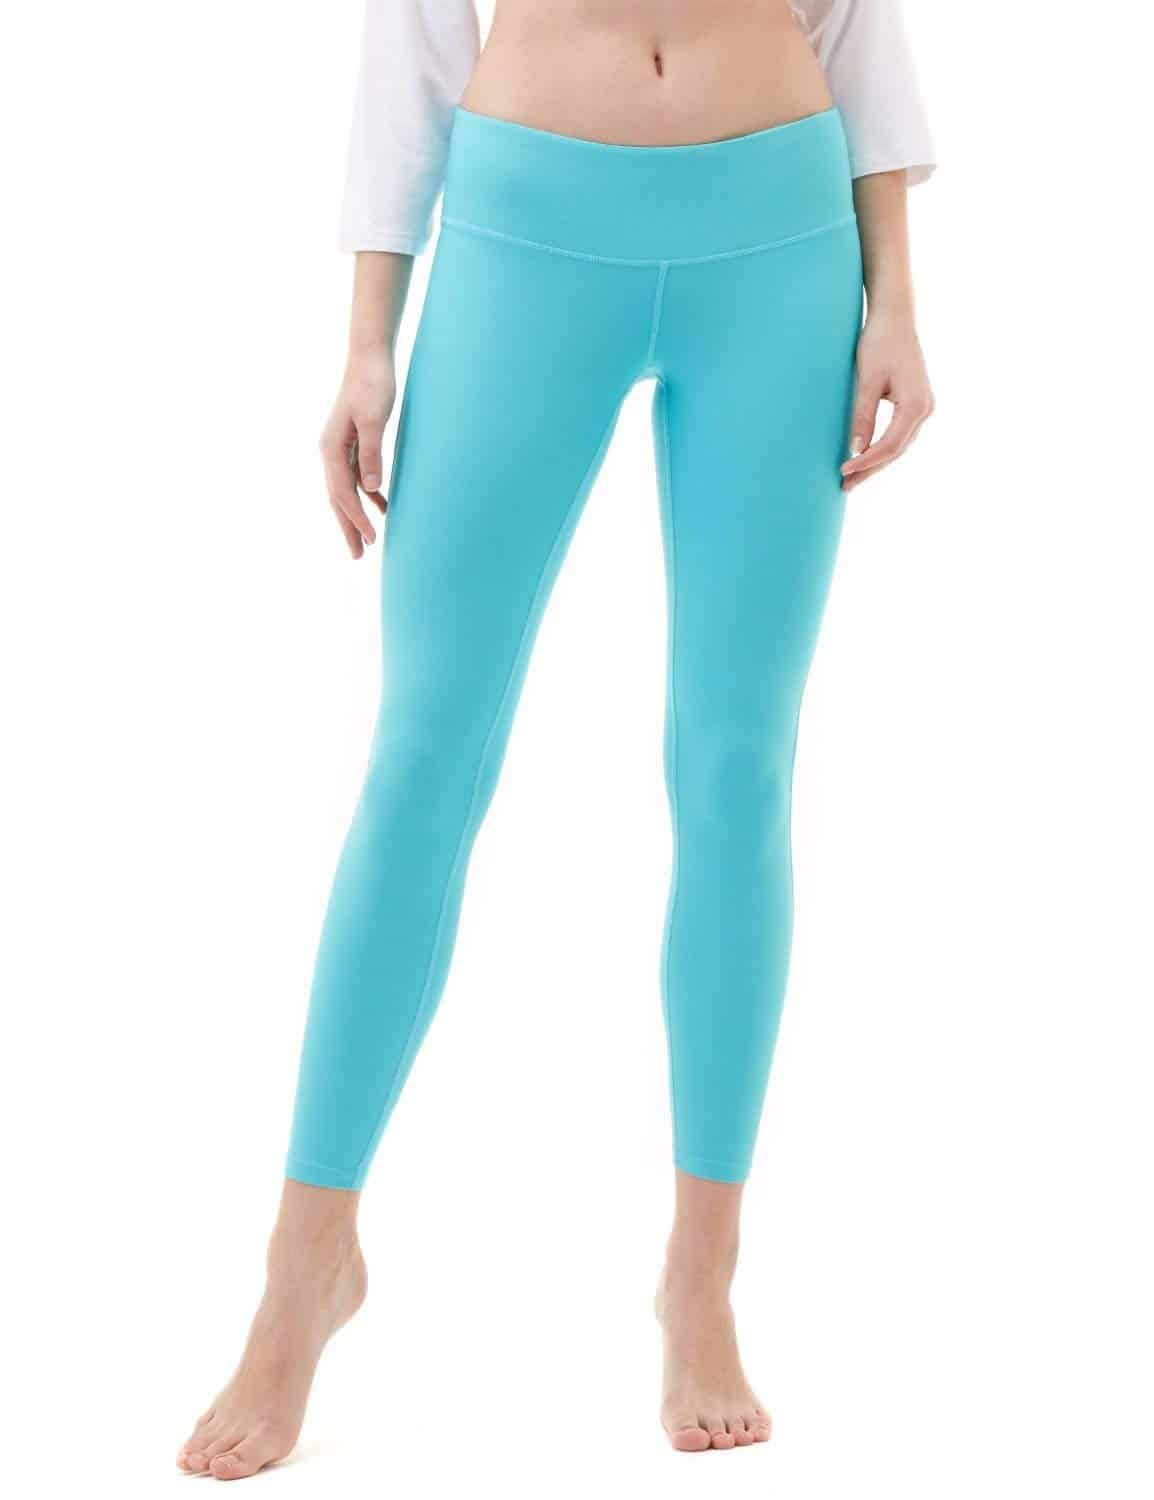 Tesla Yoga Pants Mid-Waist Leggings